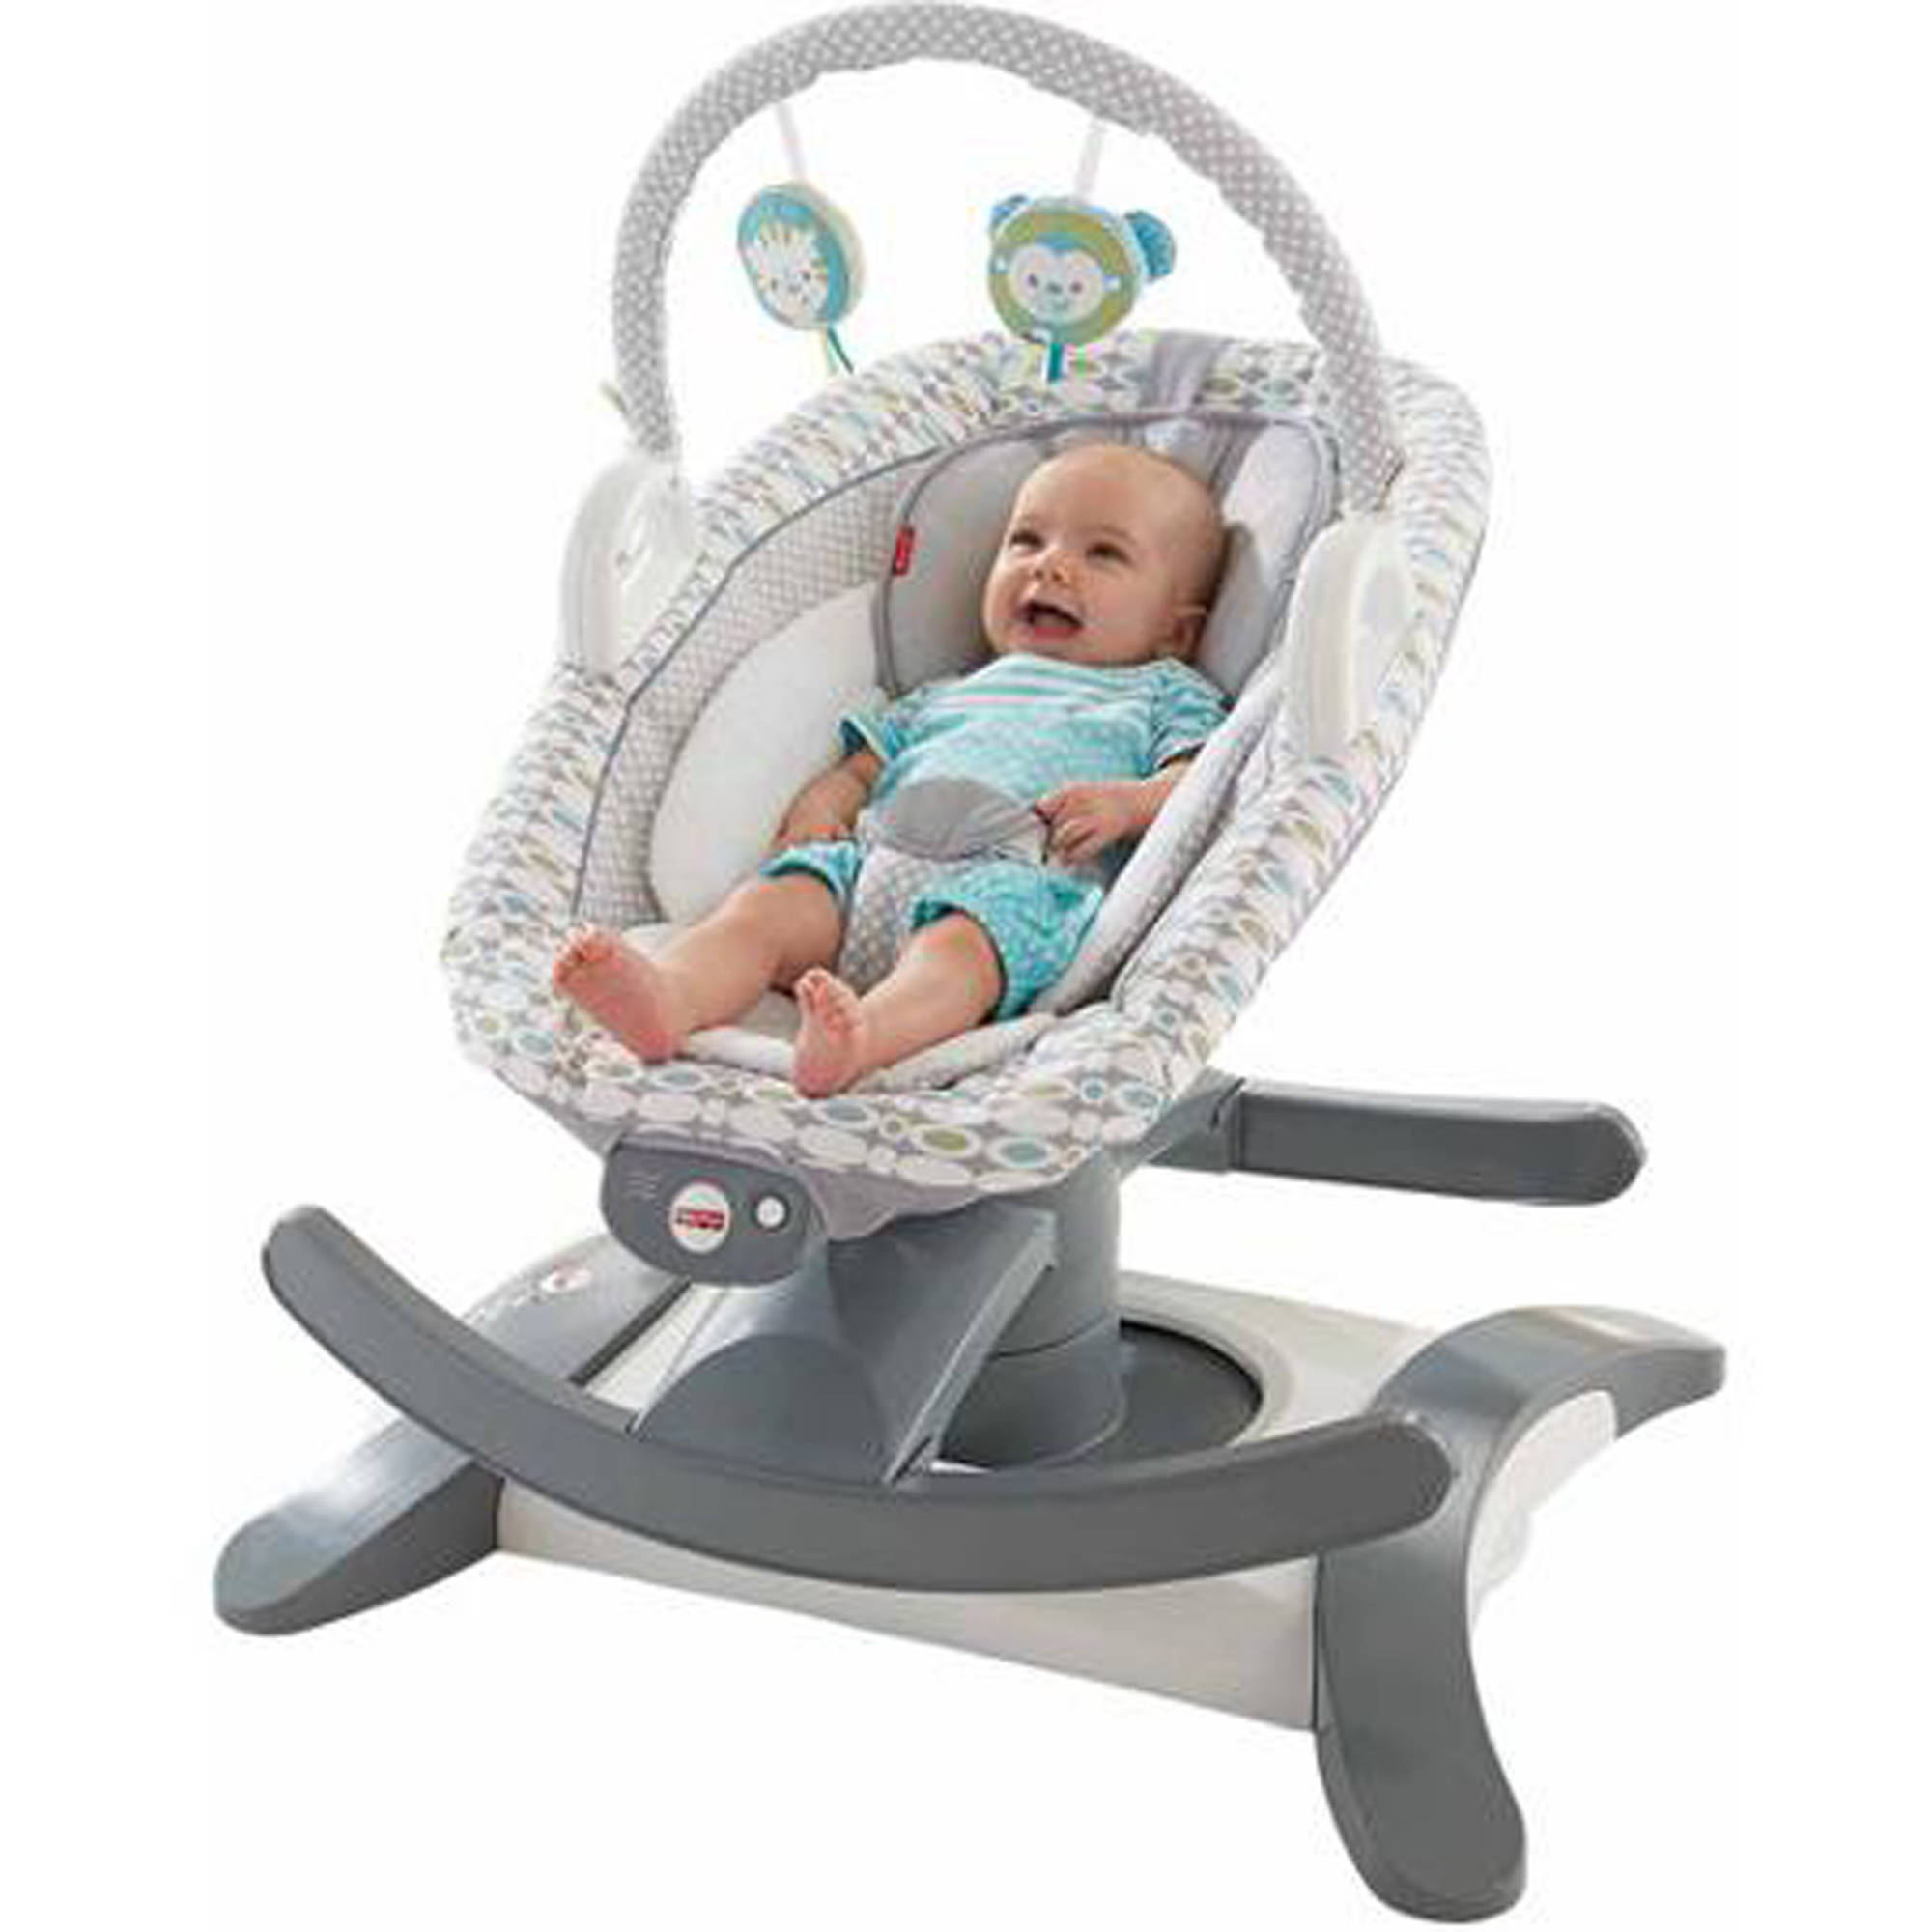 walmart baby chairs eames style dining chair safe swingset children full bucket seat swing com